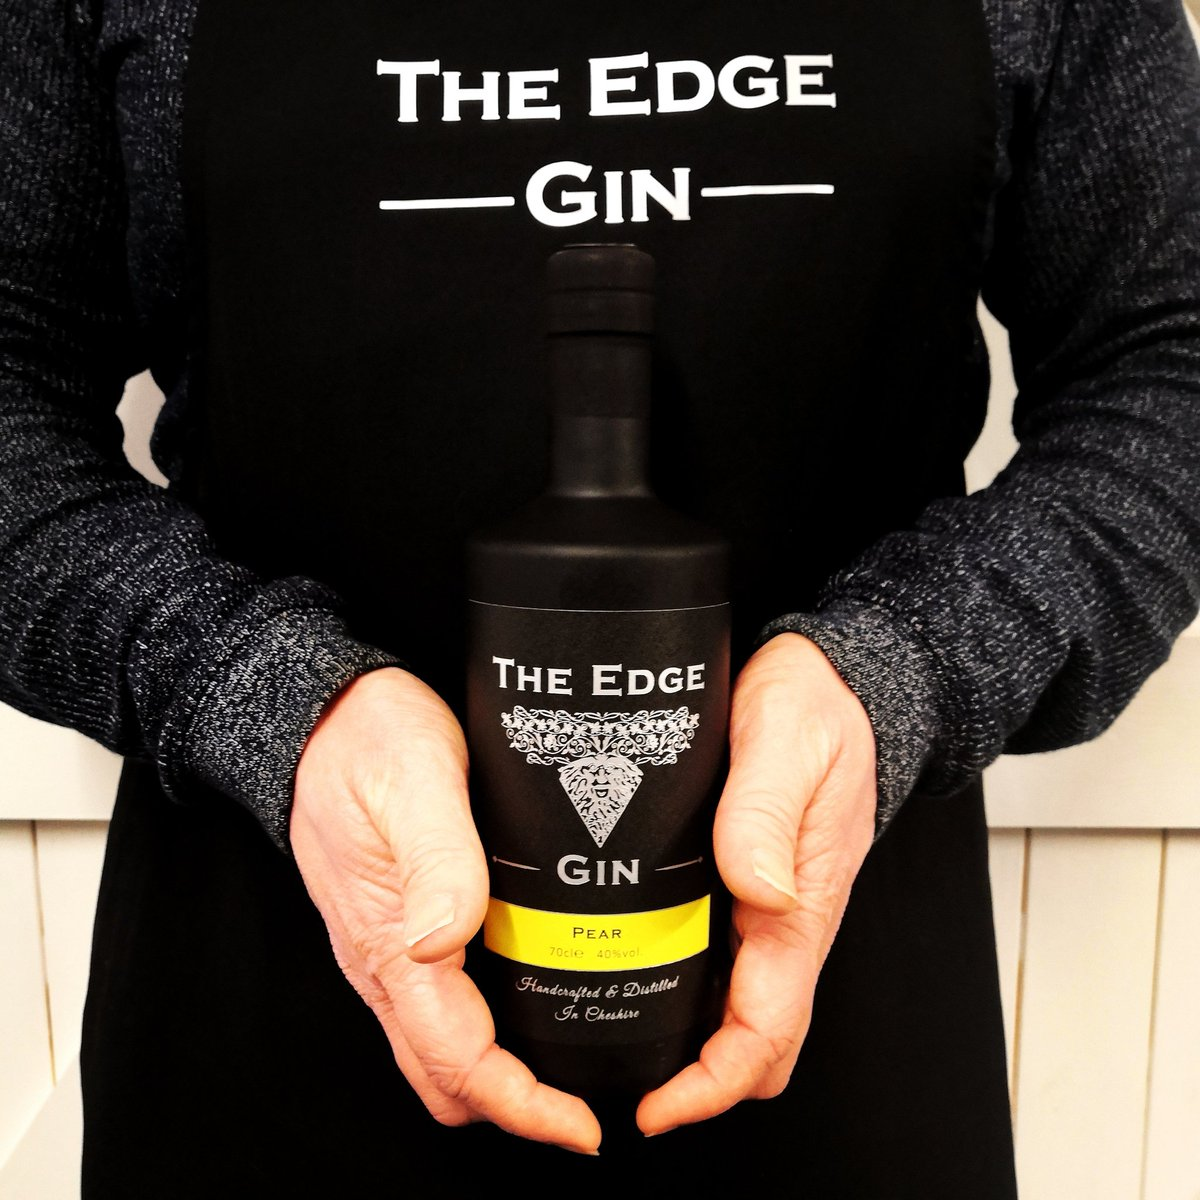 When you make an Edge Gin purchase you really are supporting a small, hard working business & we thank you very much 🧡🍐 (Full post over on our Insta/Fb) #Gin #Cheshire #Alderleyedge #Wilmslow #wednesdaythought #giftideas Ps Our Pear Gin would be lush for #GinSoakedRaisins  😉